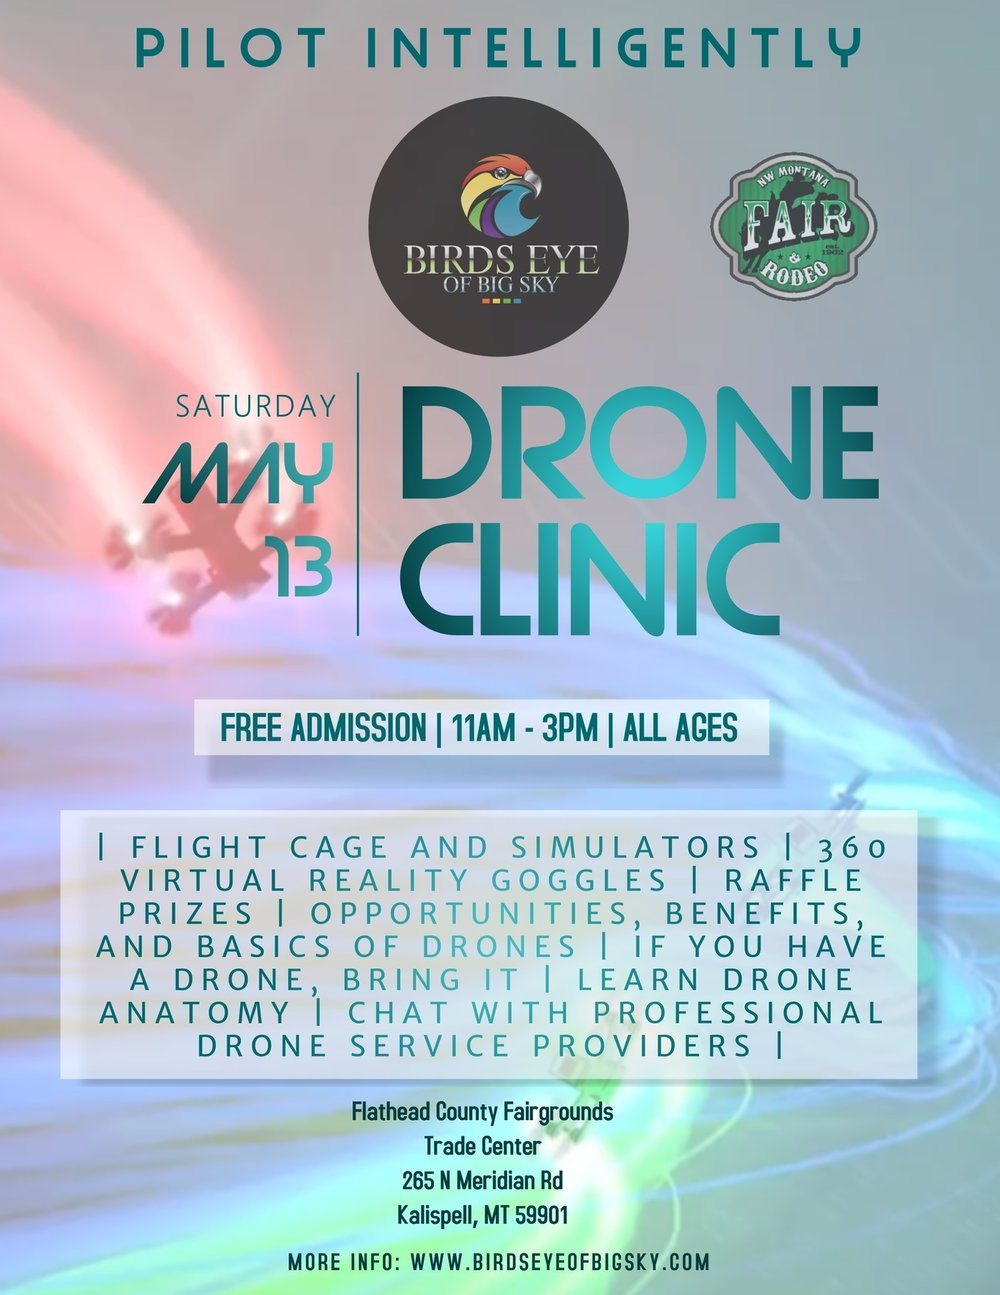 May Drone Clinic is being held at the Fairgrounds Trade Center in Kalispell on May 13 from 11AM - 3PM.